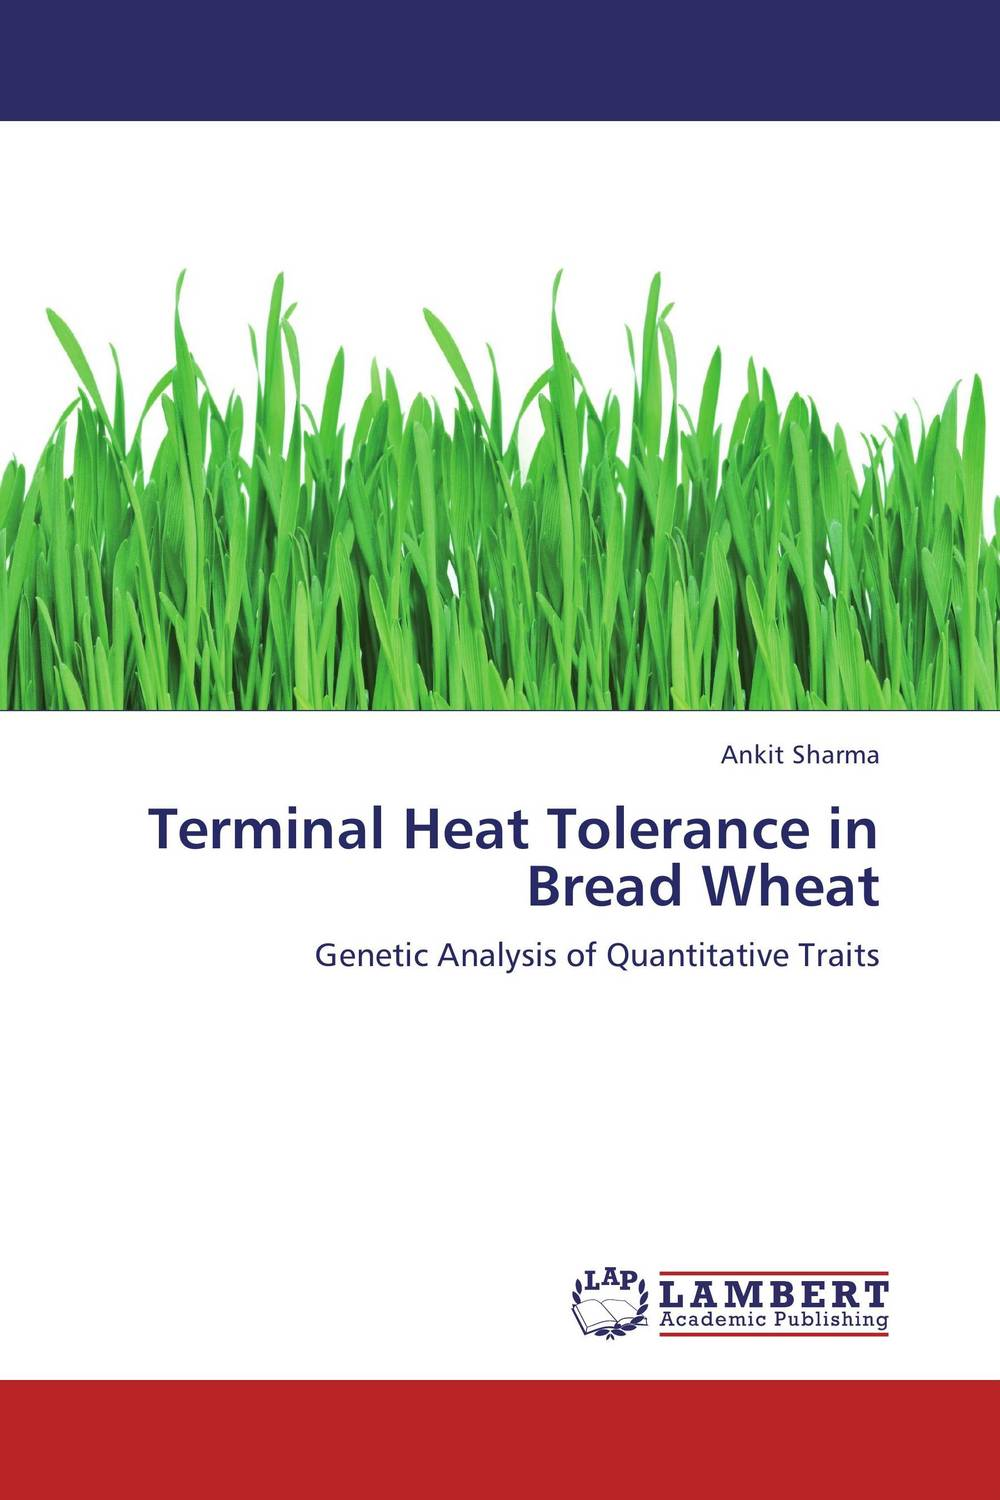 Terminal Heat Tolerance in Bread Wheat